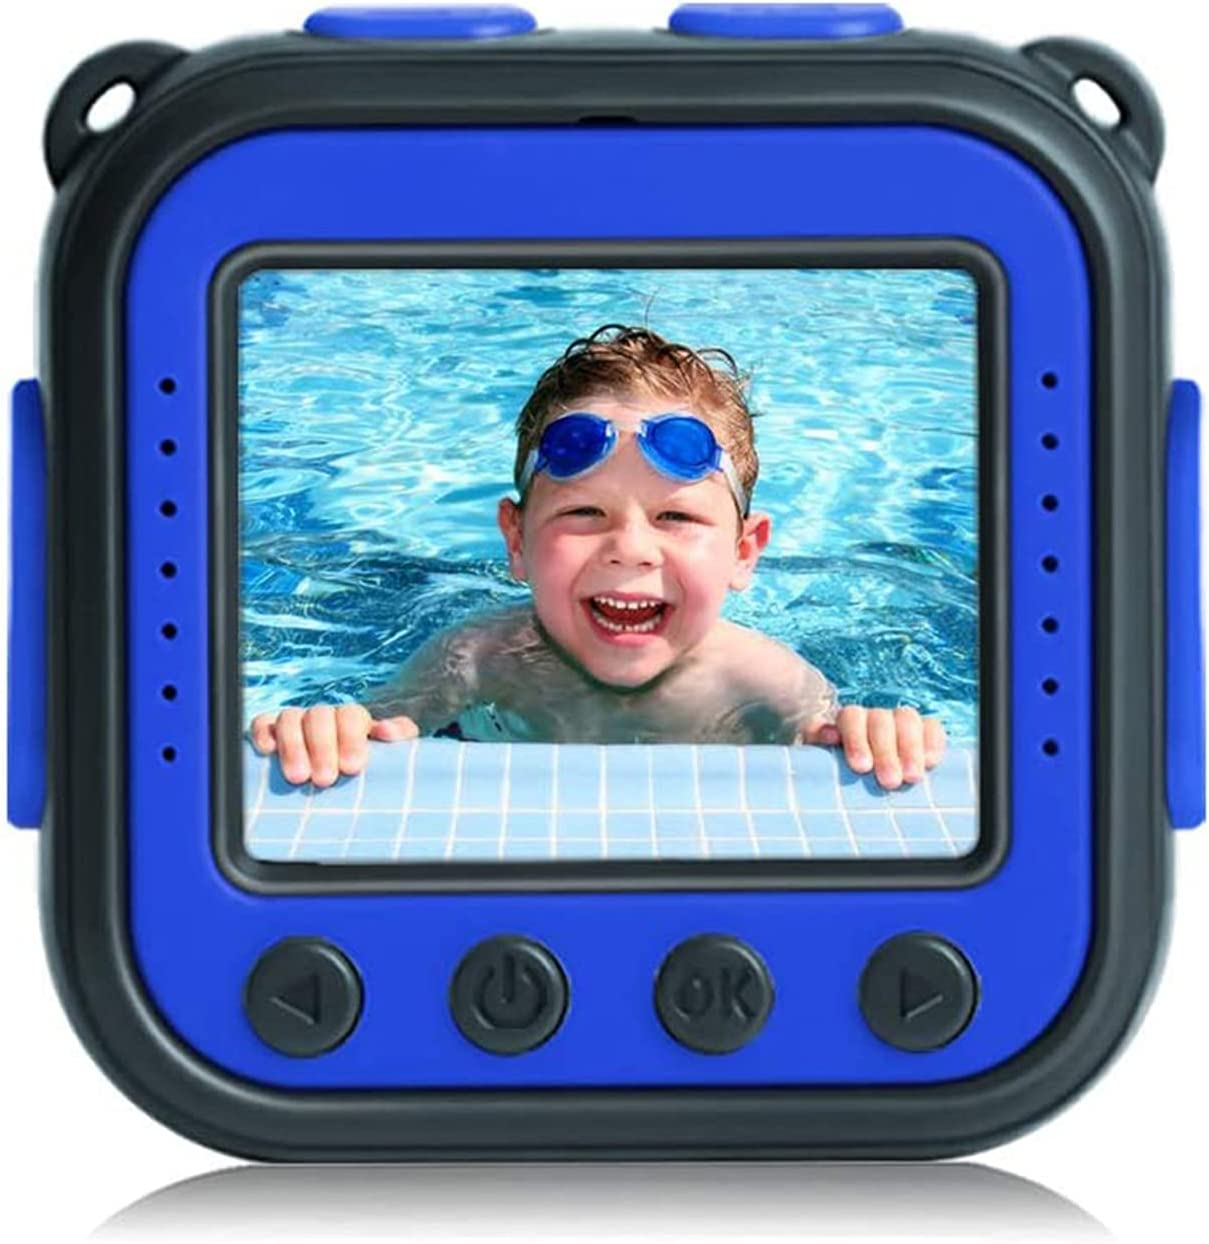 [Upgraded] PROGRACE Kids Waterproof Camera Action Video Digital Camera for Kids 1080P Camcorder for Girls Boys Toys Gifts Build-in Game(Blue) Bundle with 32GB Micro SD Memory Card Class 10